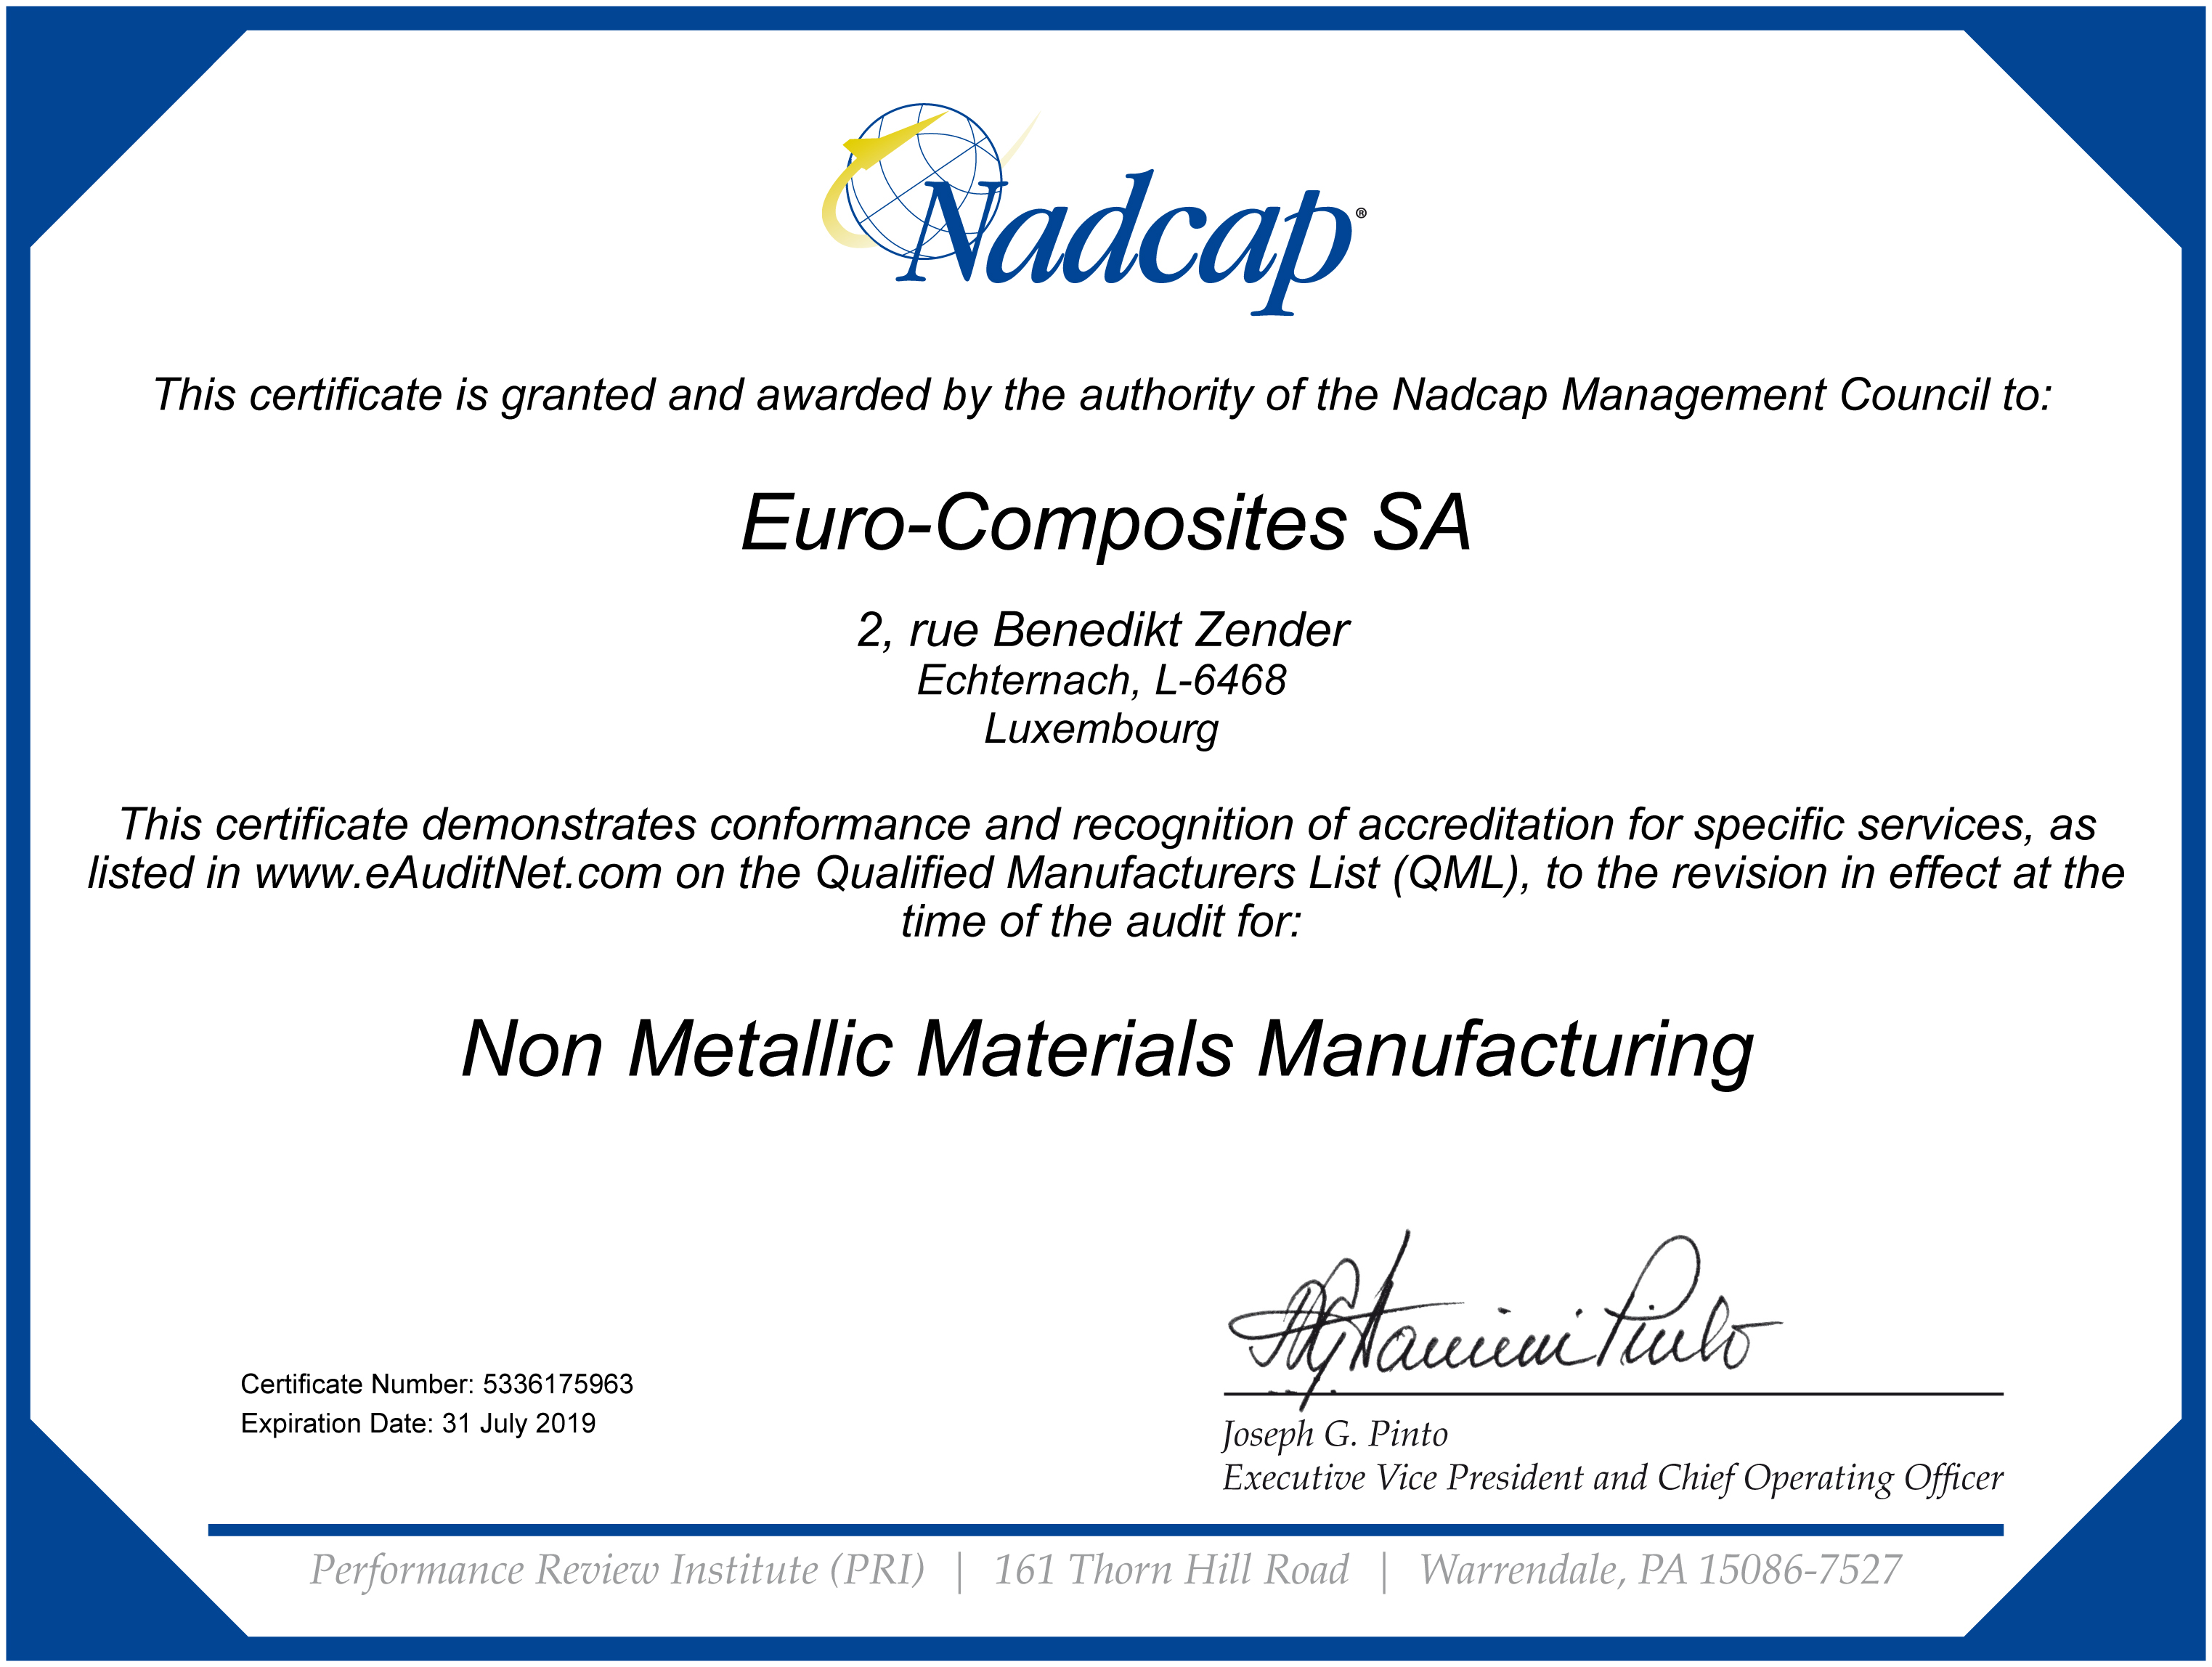 Nadcap Certification For The Manufacturing Process Euro Composites